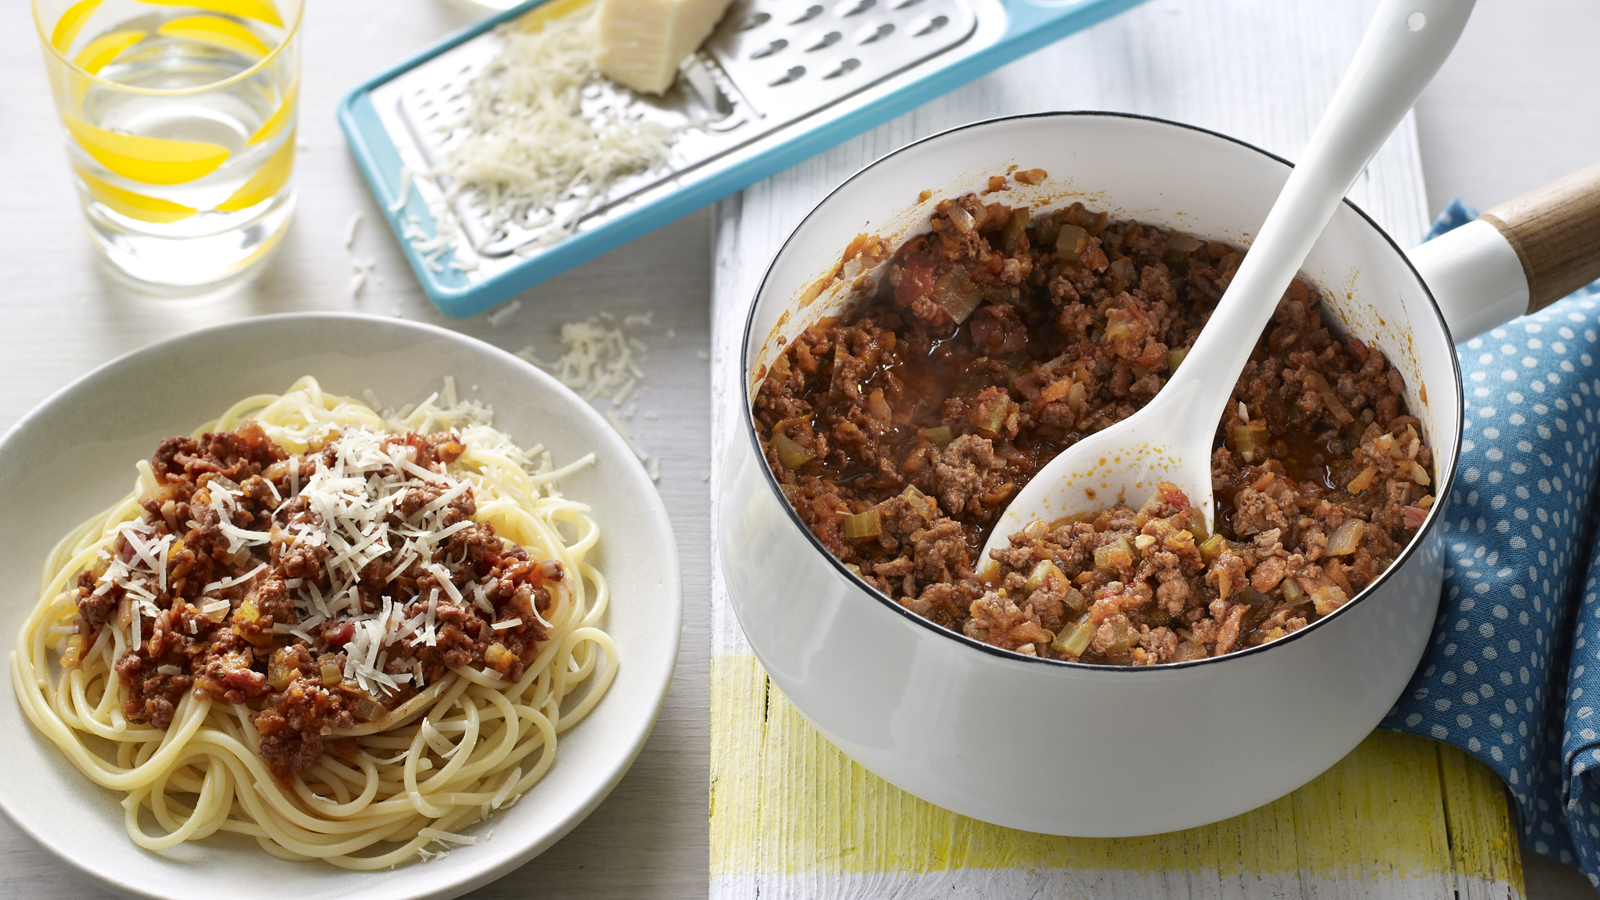 How To Make Spaghetti Bolognese Recipe Bbc Food